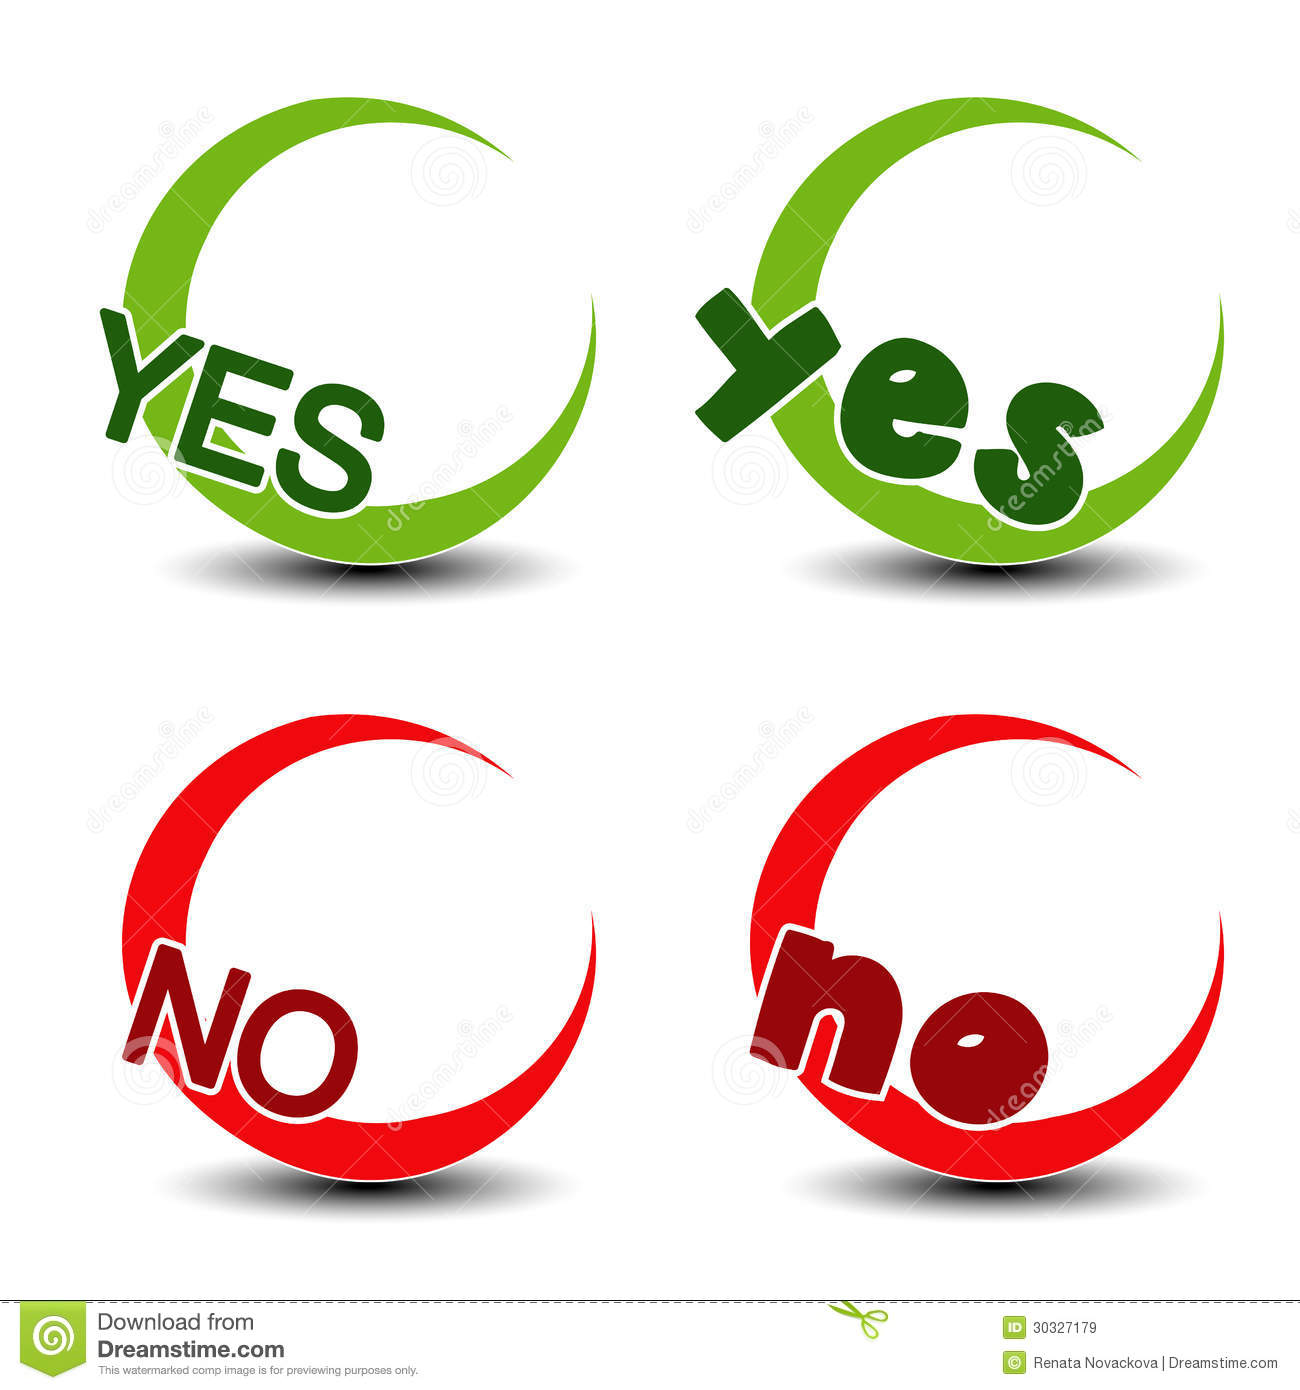 Yes no symbol positive negative icon stock vector illustration royalty free stock photo buycottarizona